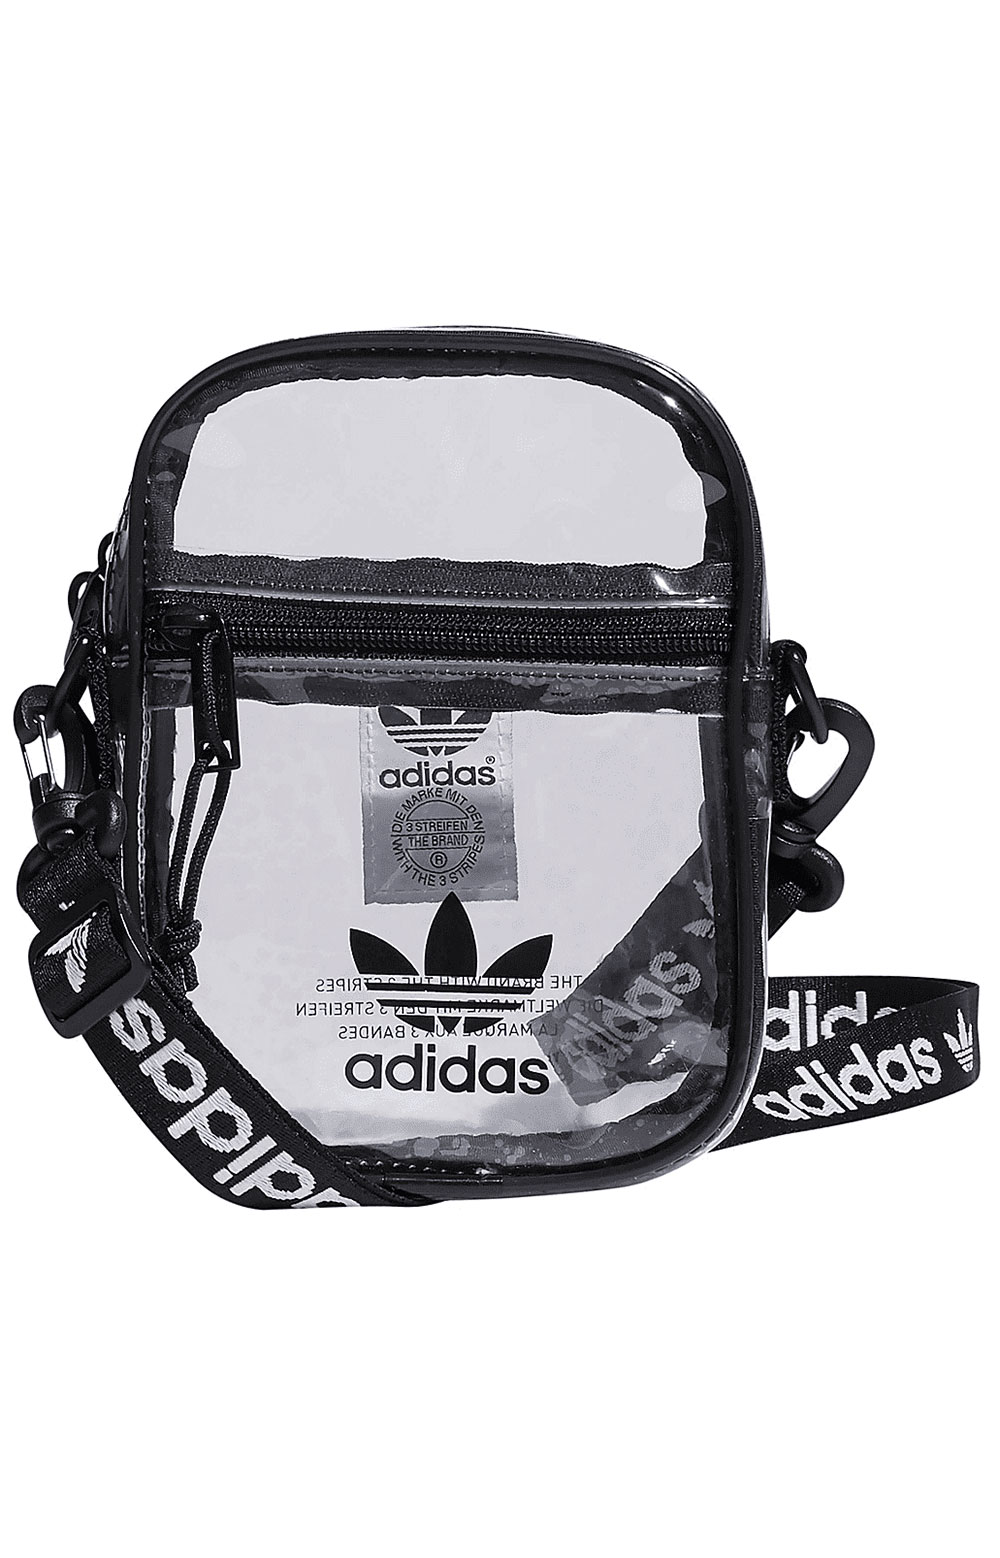 Originals Clear Festival Crossbody Bag - Black